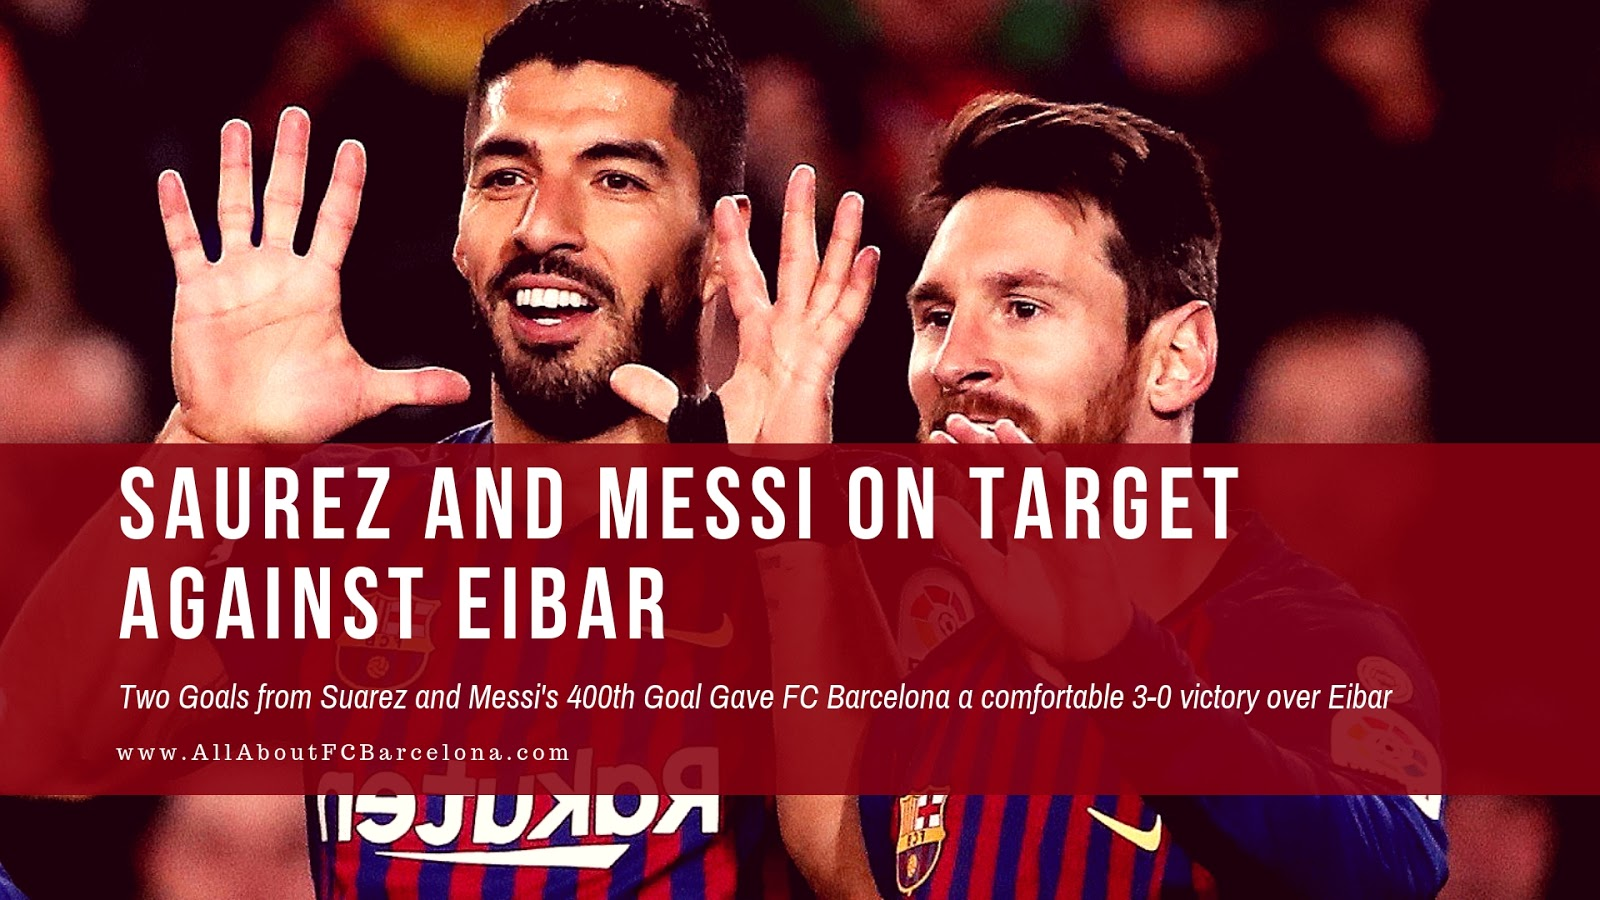 Luis Saurez scored twice and assisted Messi's 400th Goal in la Liga in Barca's 3-0 victory over Eibar #Barca #FCBarcelona #Messi #Saurez